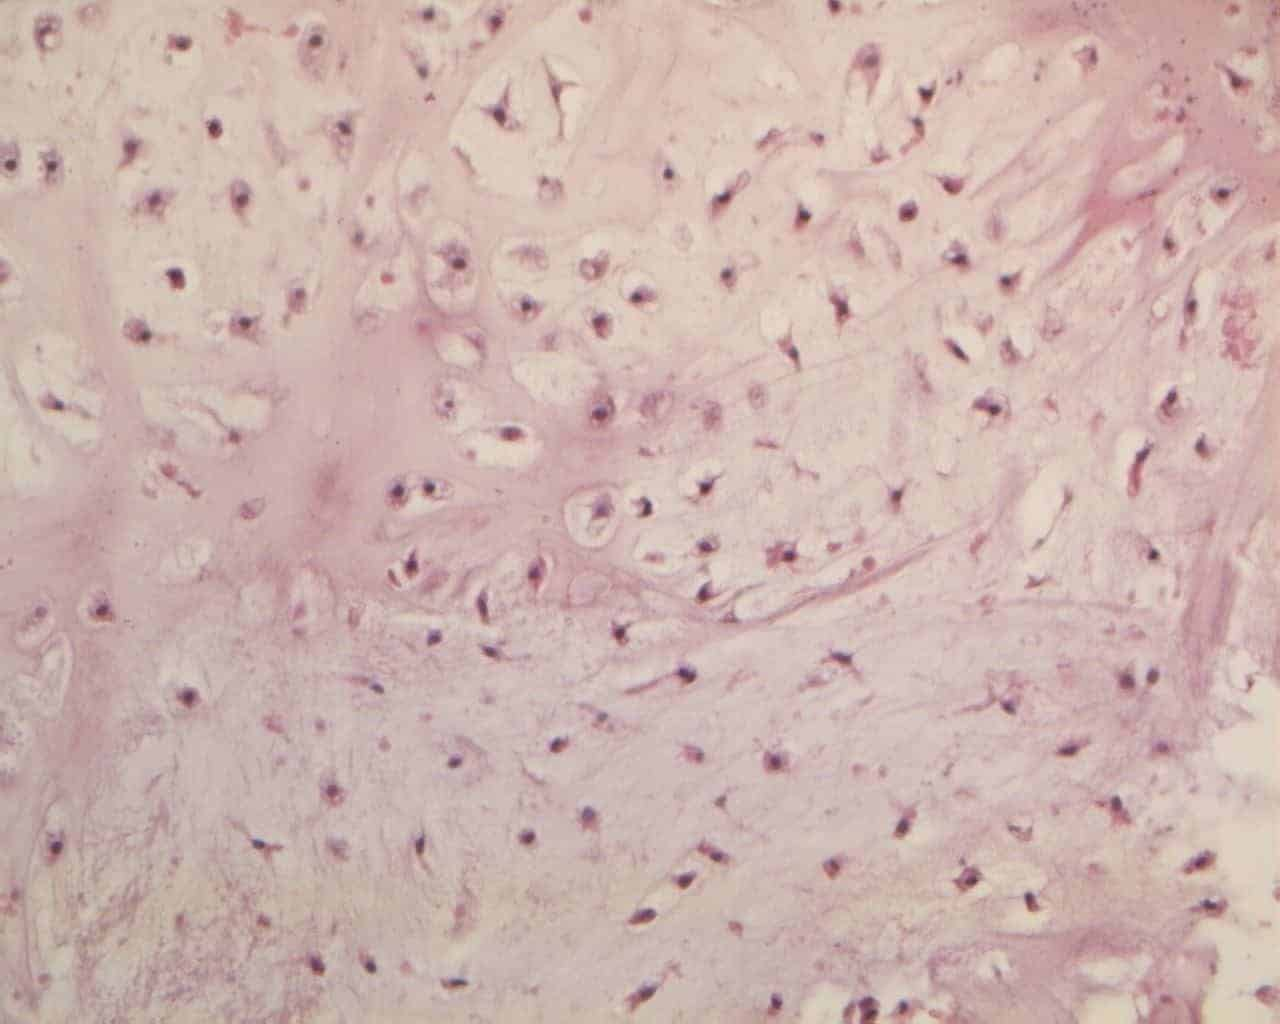 Figure 4B. Chondrocytes with finely granular eosinophilic cytoplasm is often vacuolated with small nuclei (e.e. 20x).